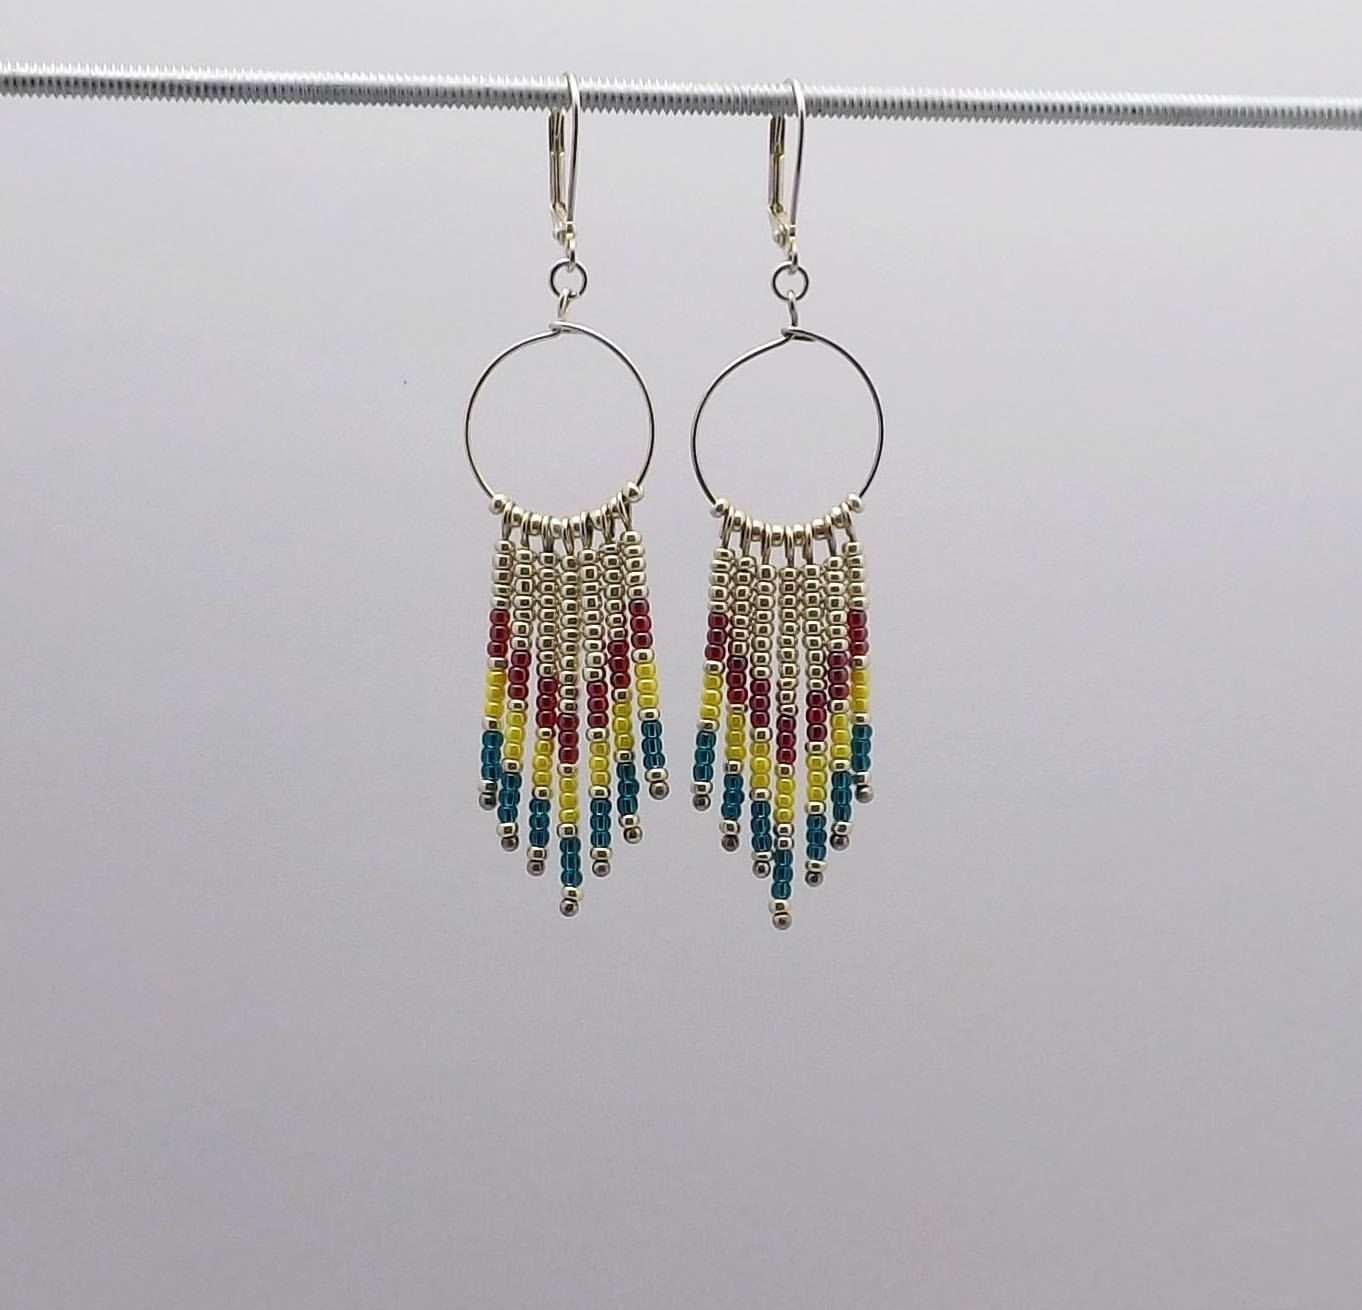 Beaded Dangle Earrings in a Chevron Design with Dark pink,Yellow, Teal beads - 3 inches long Sku:ER1012 by JewelryByKathyAbma on Etsy